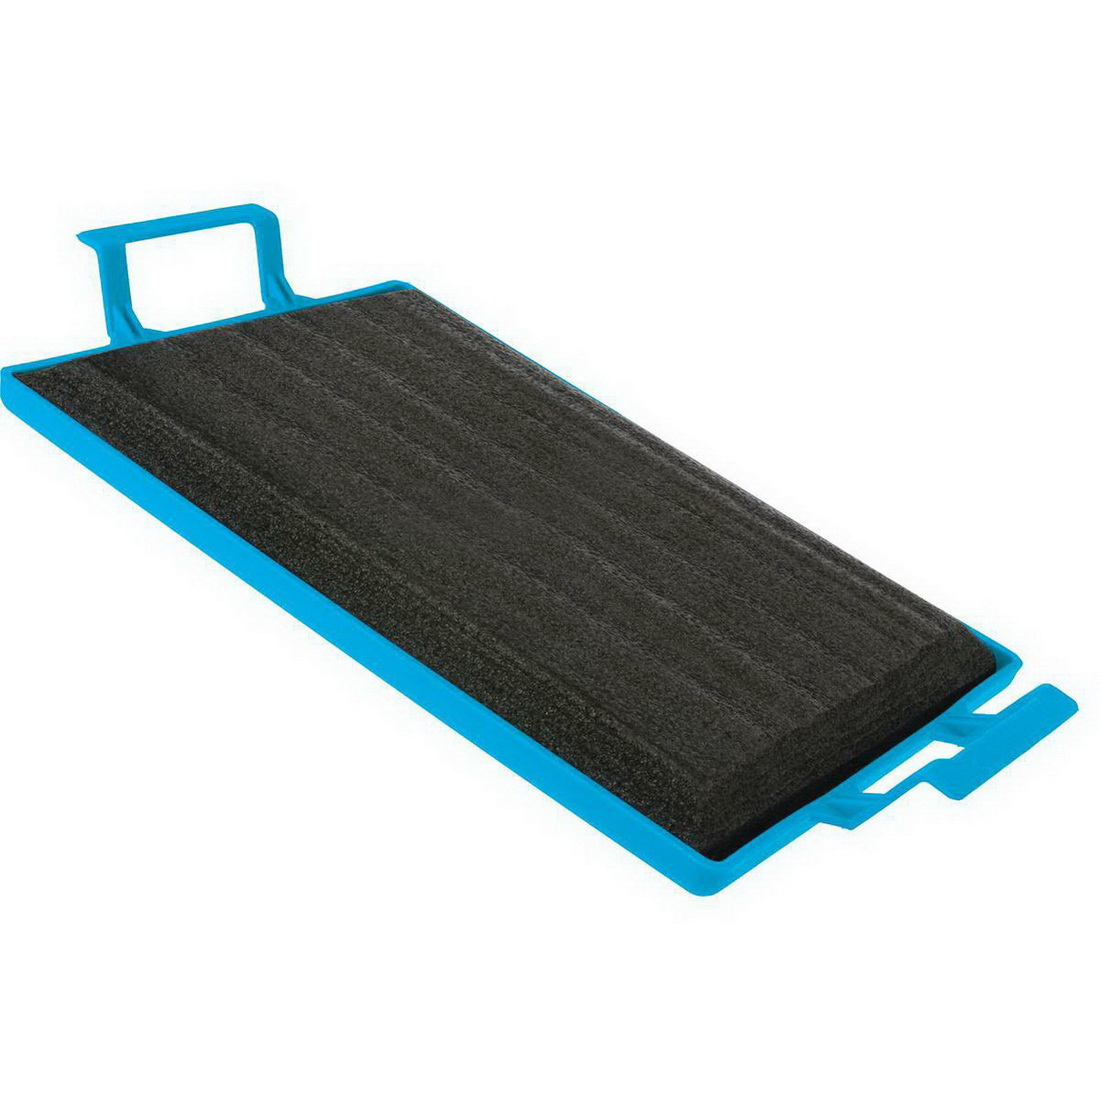 Trade Series 350 x 480mm Kneeling Board